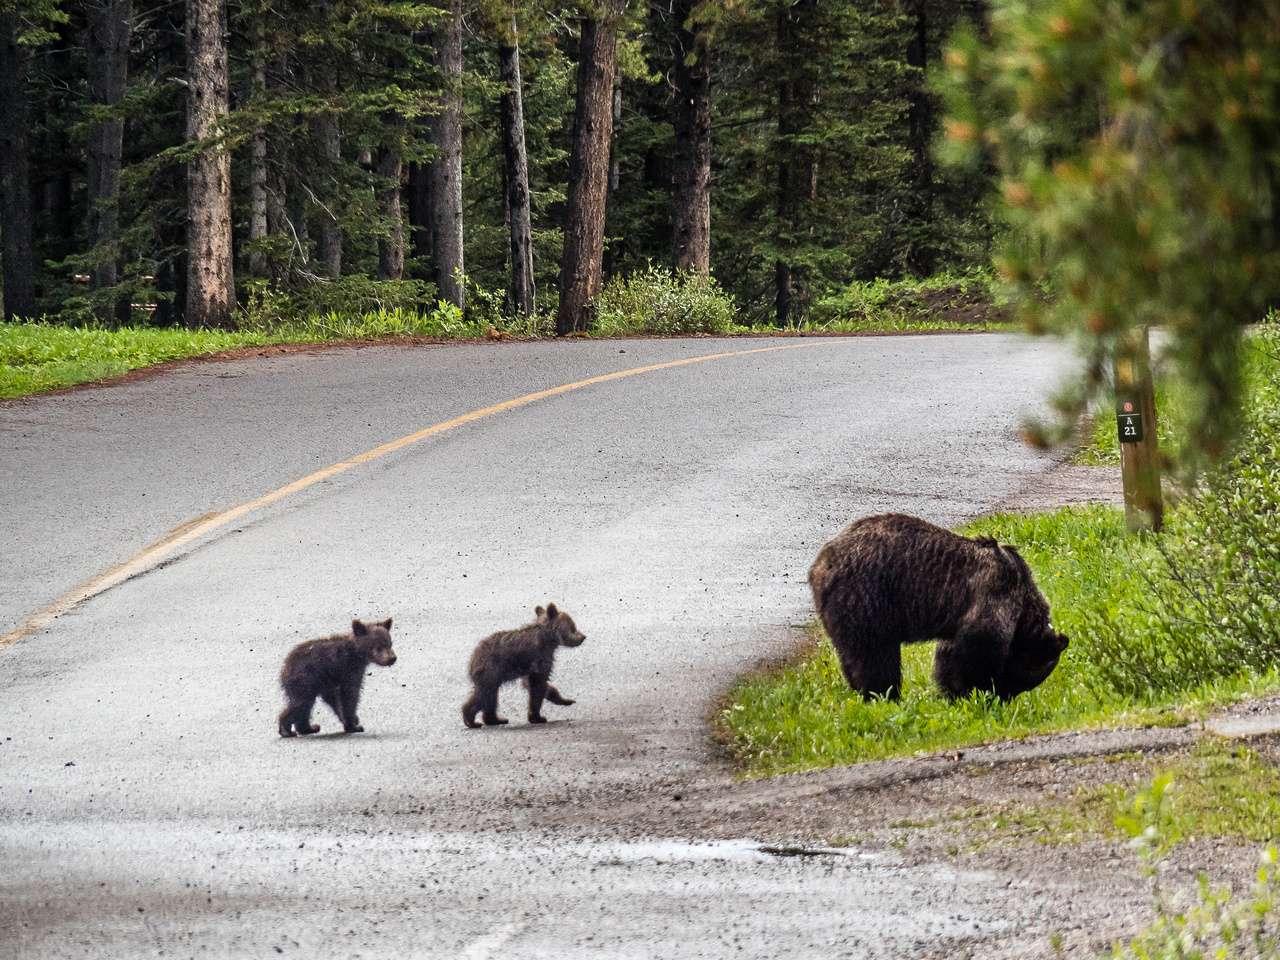 A family of Grizzlies at our camp in Kananaskis.